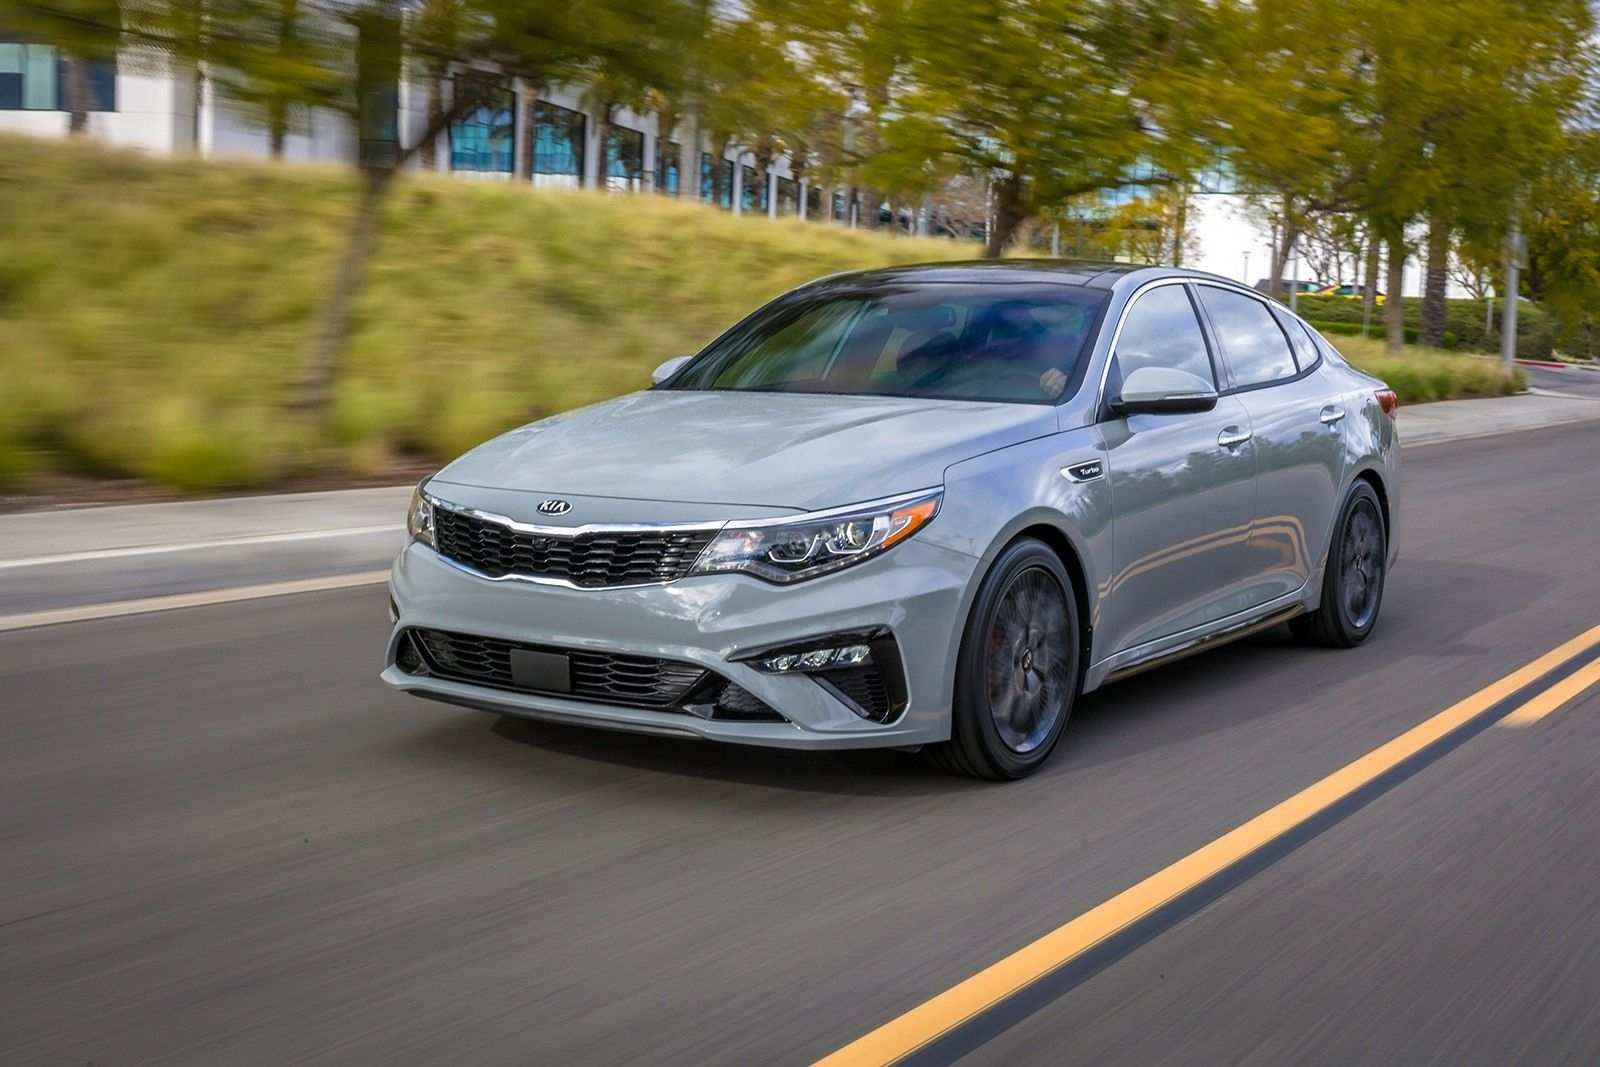 43 Concept of Best Kia 2019 Hybrid Review Specs with Best Kia 2019 Hybrid Review